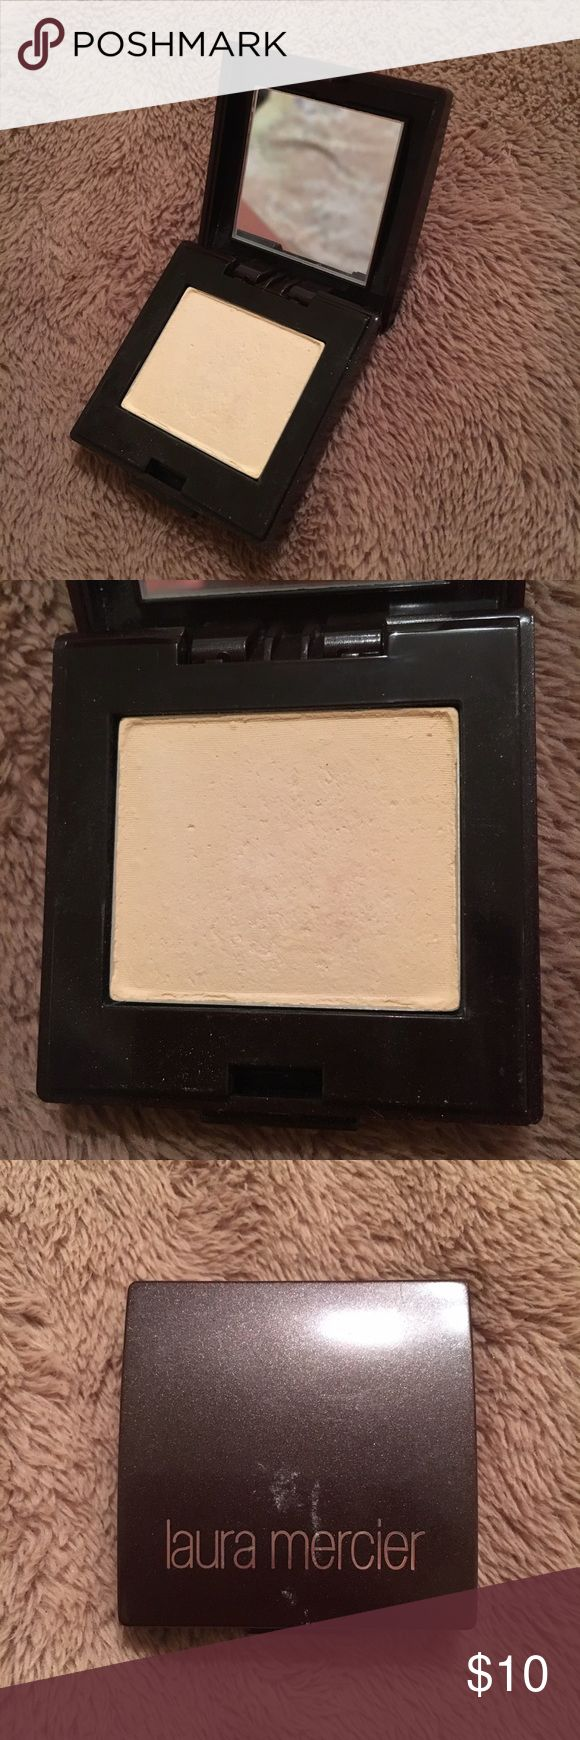 Laura Mercier - Eyeshadow Barely used. In great condition. Summer Sand Eye Shadow Color. All of my mom's impulsive buys that got used once or twice. Open to offers! laura mercier Makeup Eyeshadow